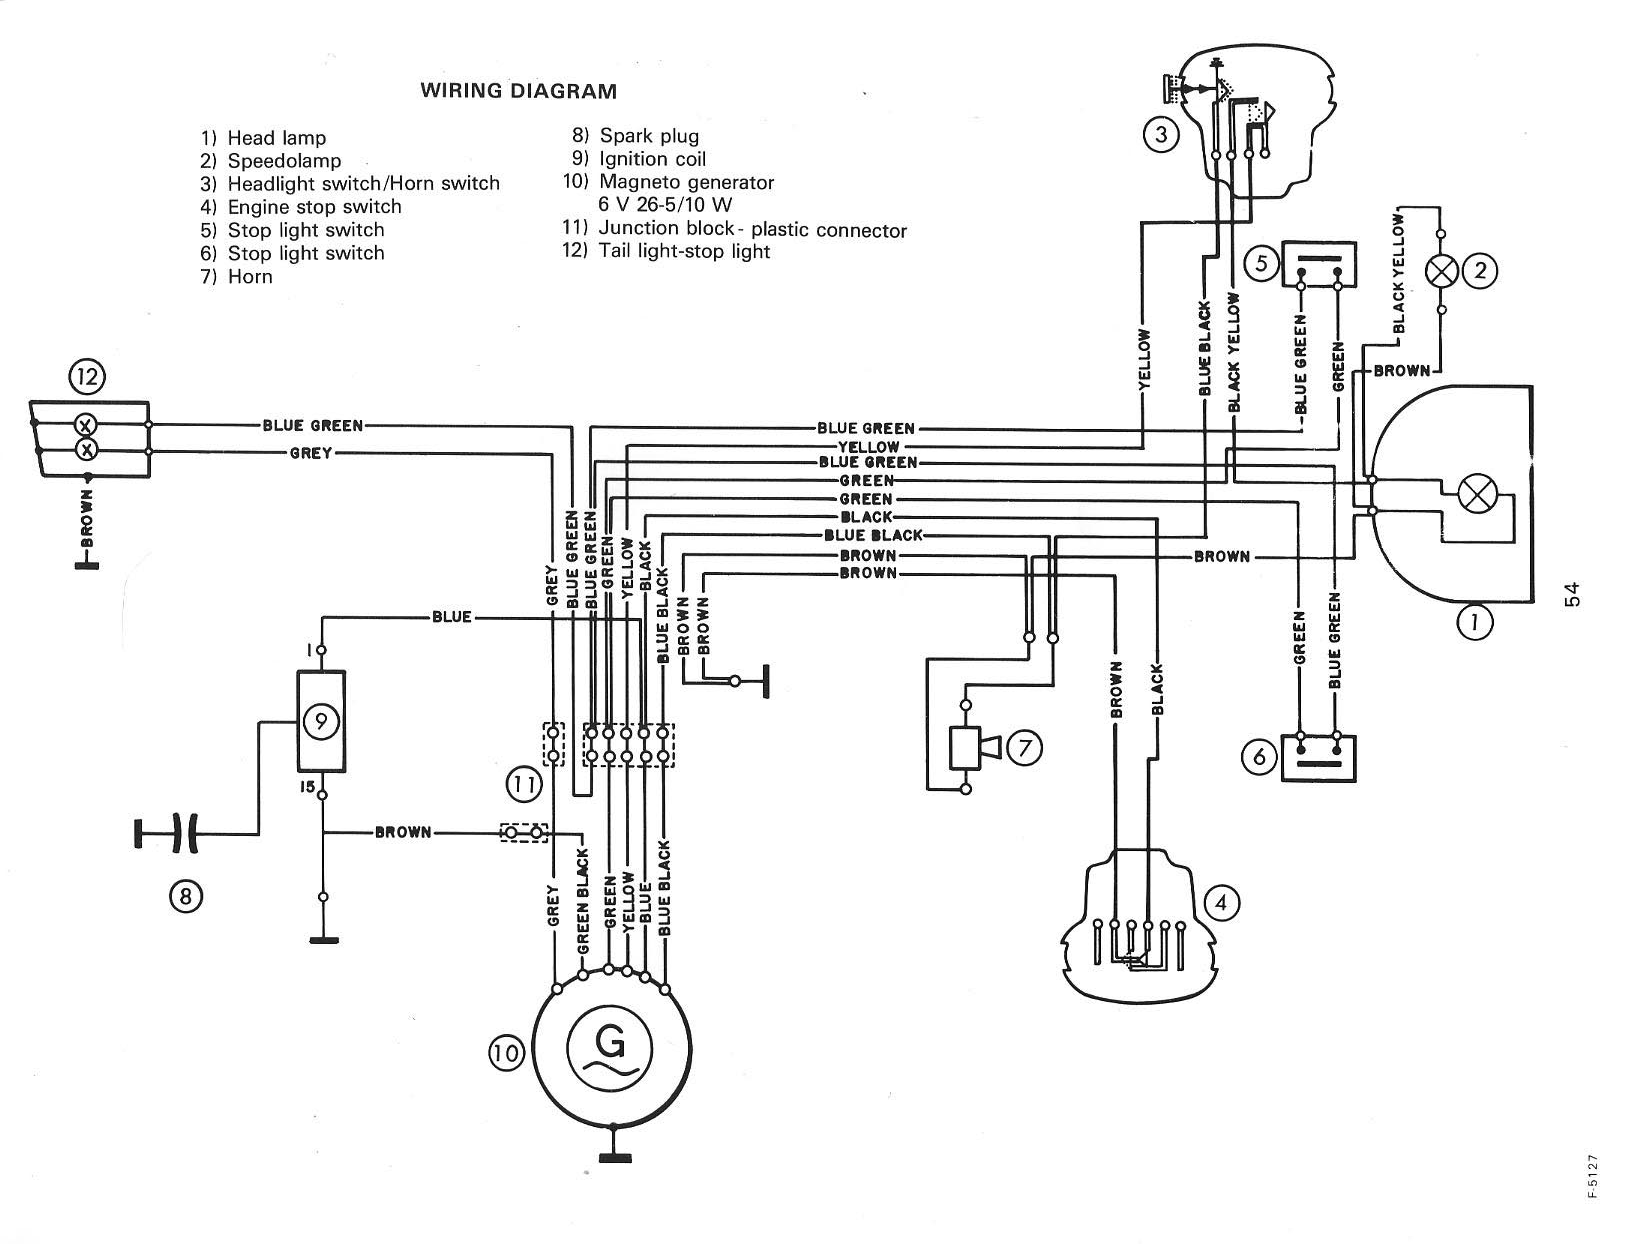 Puch wiring diagrams on murray wiring diagram